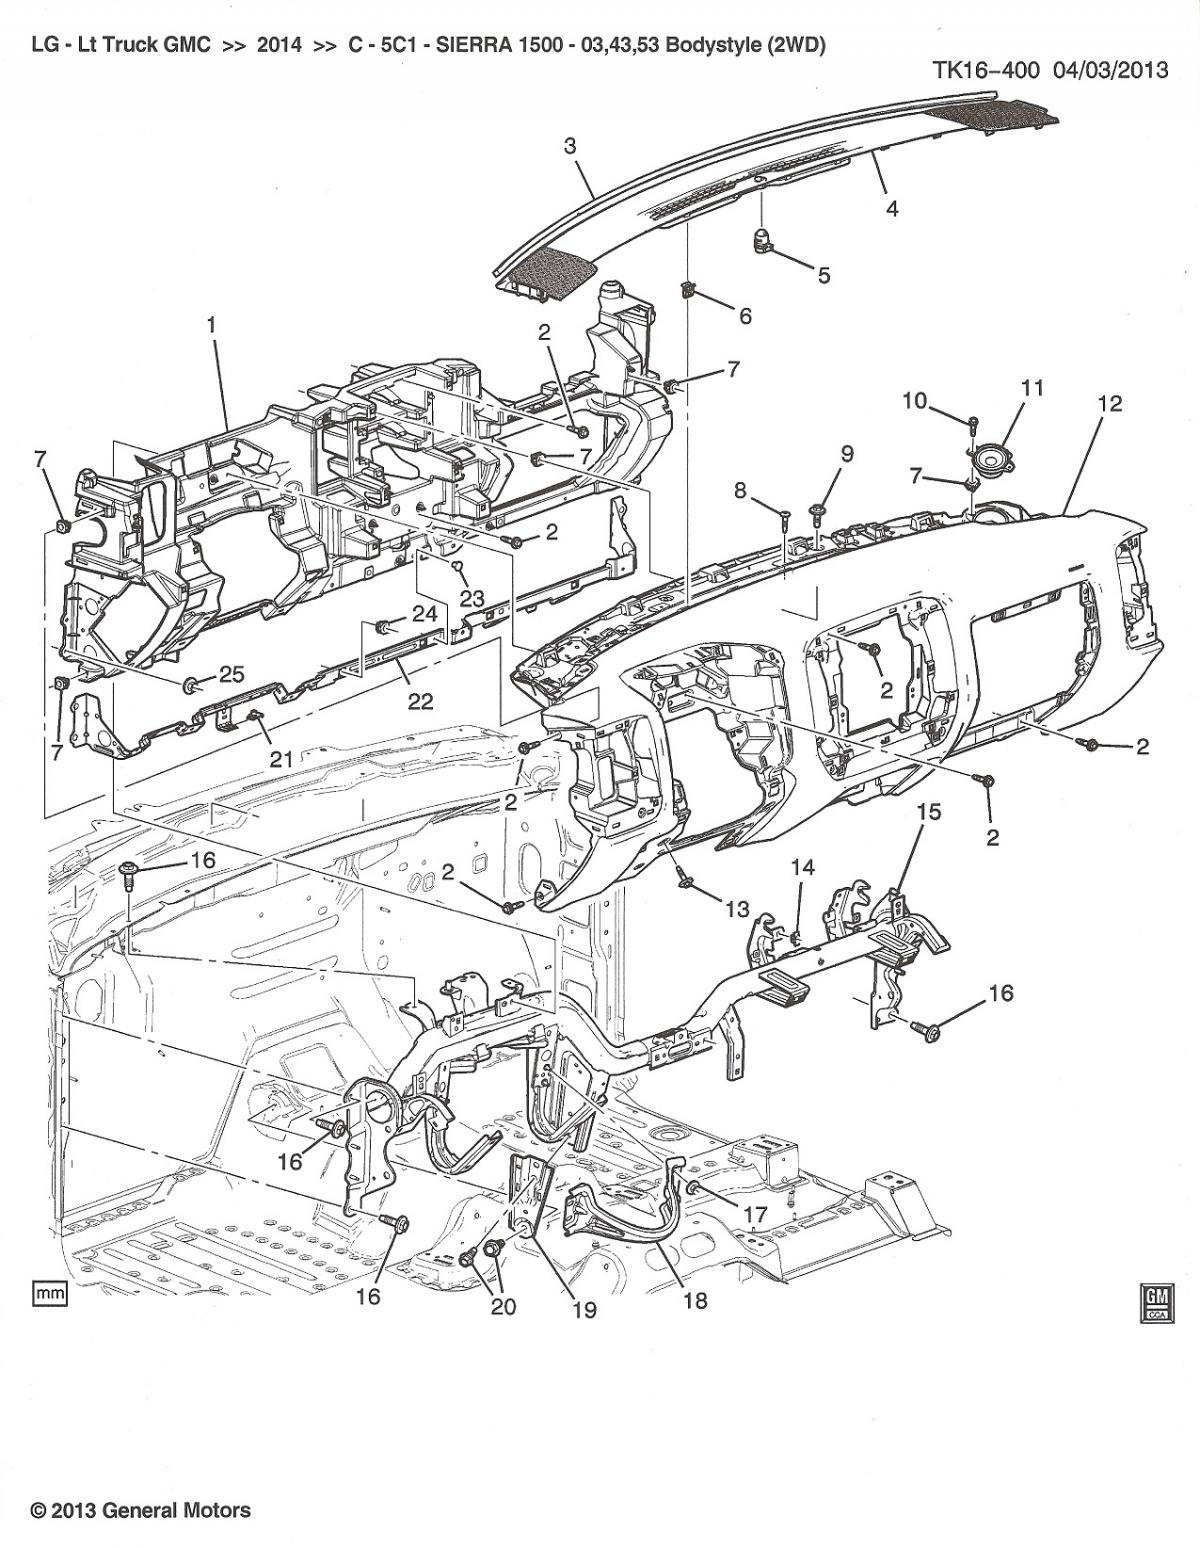 Chevy Silverado Hd Engine Diagram